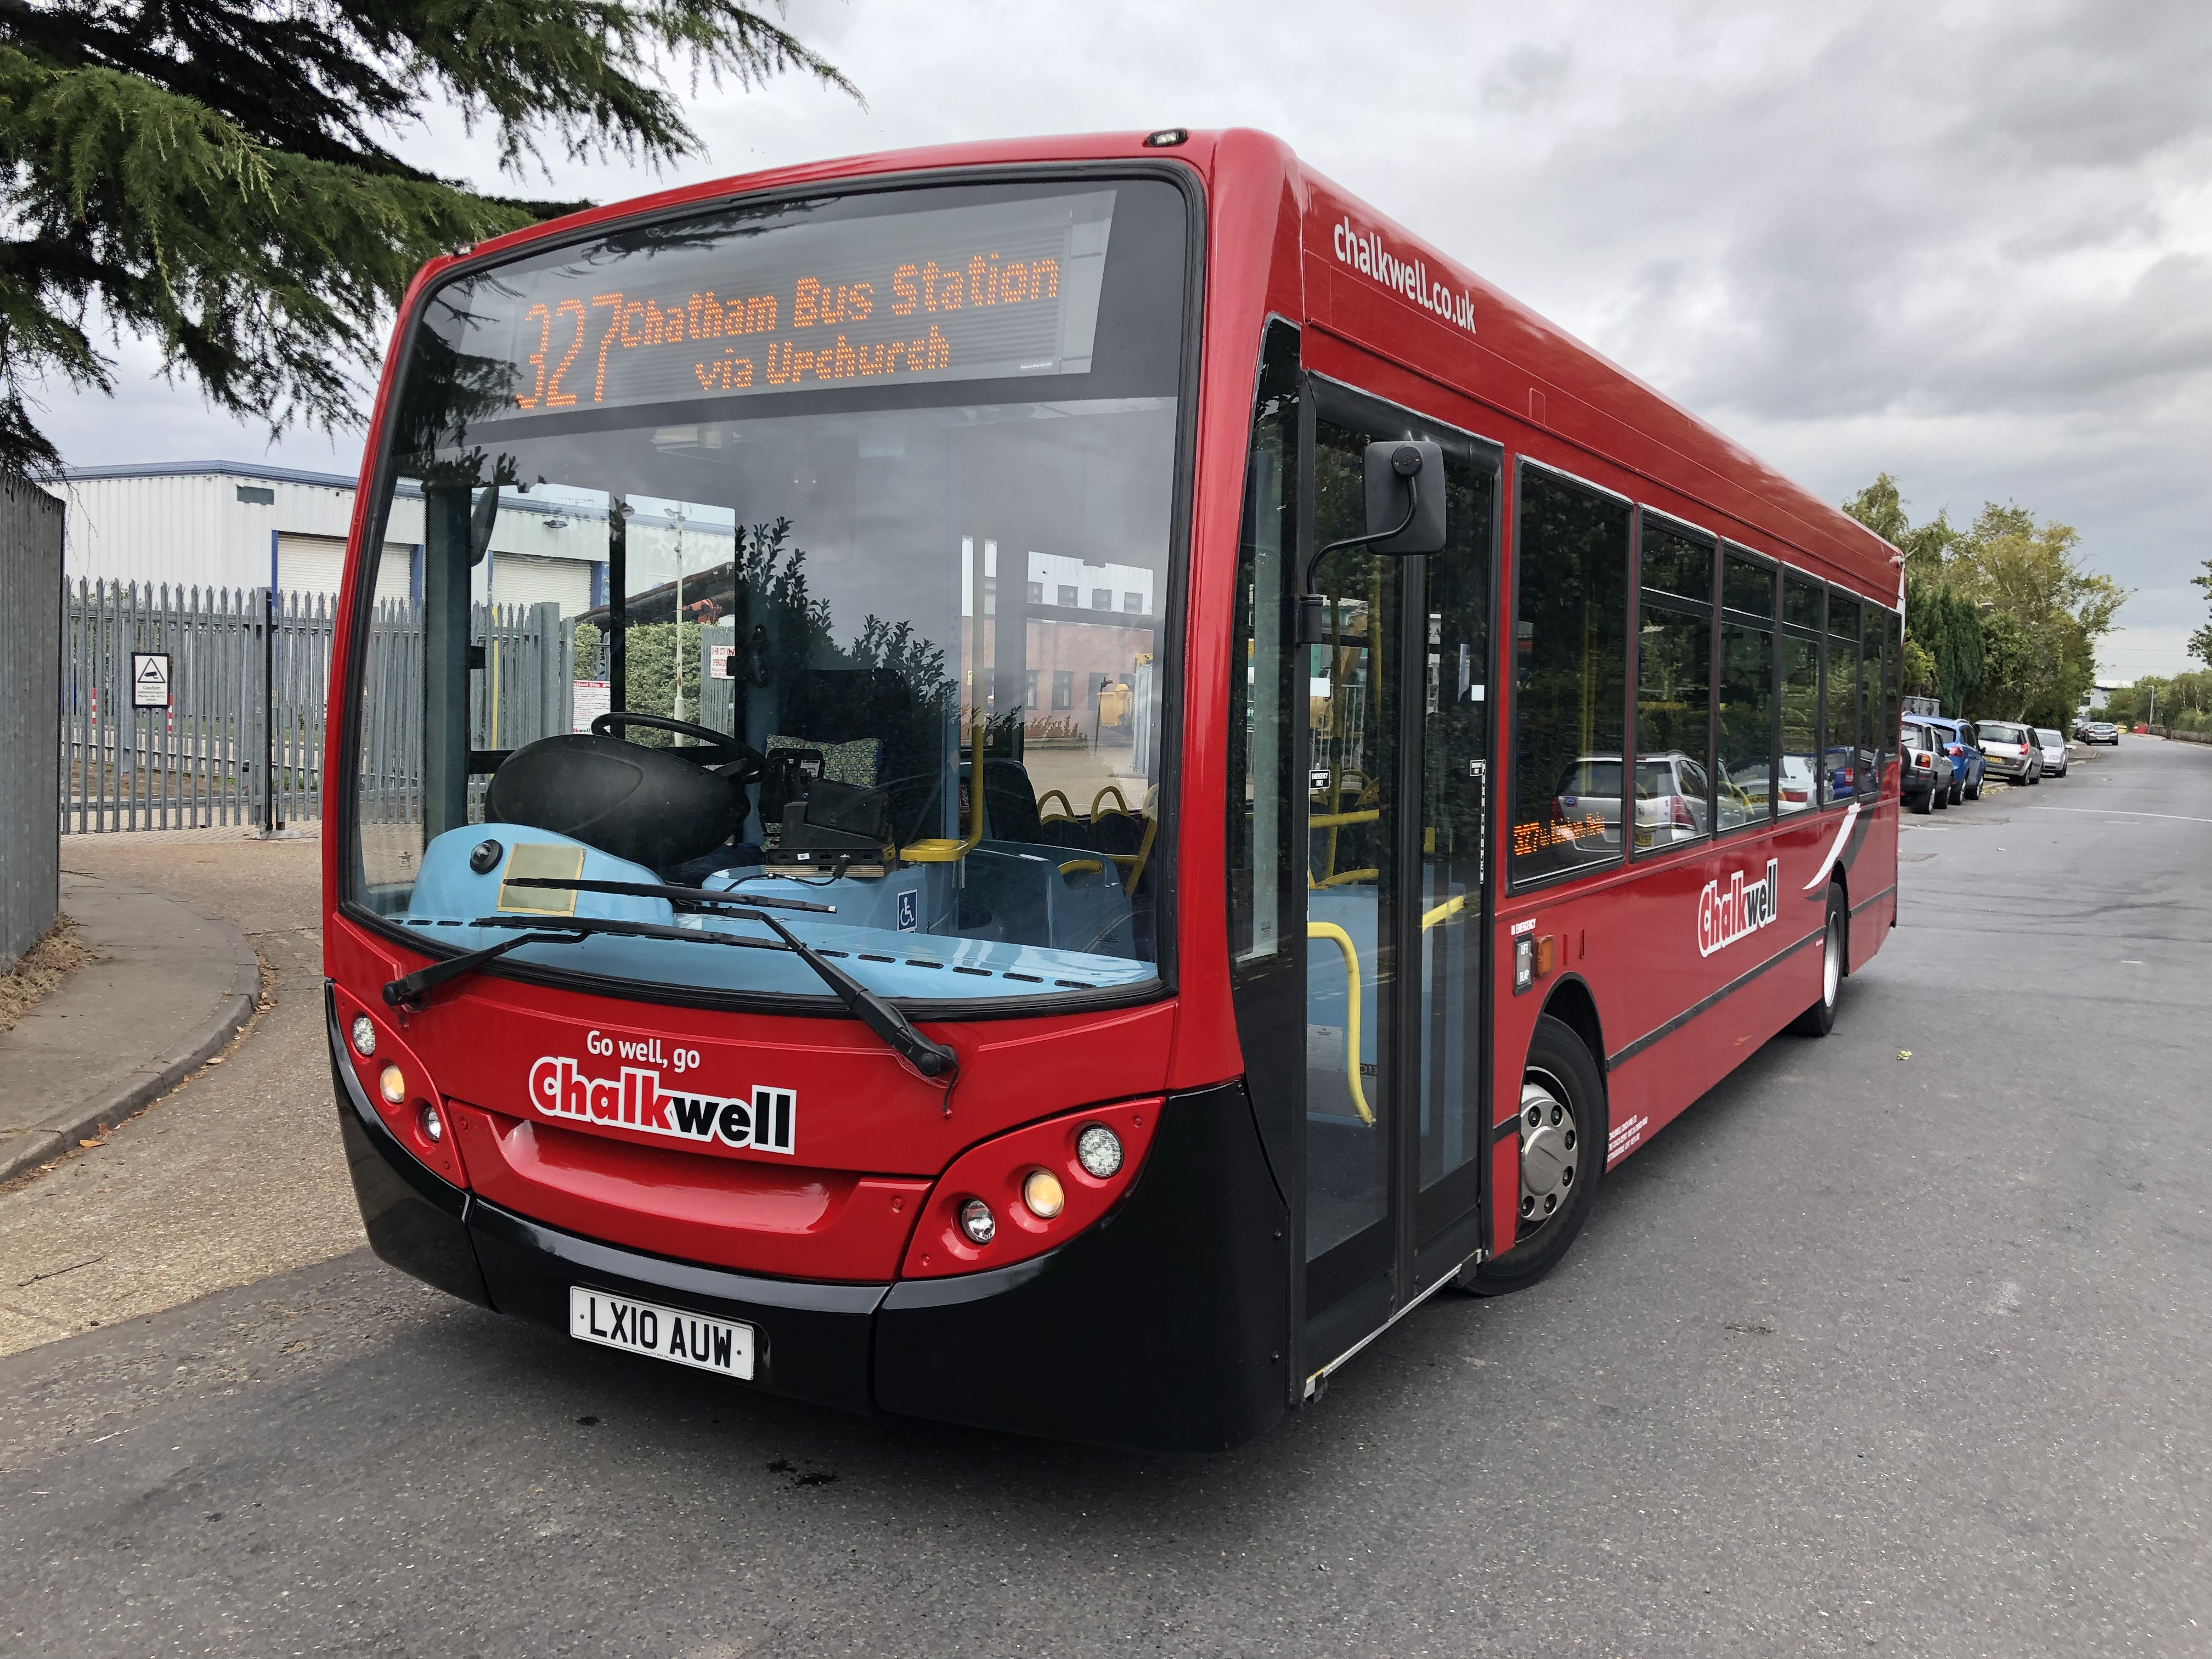 Changes to 326/327/328 Bus Service 31st August 2021